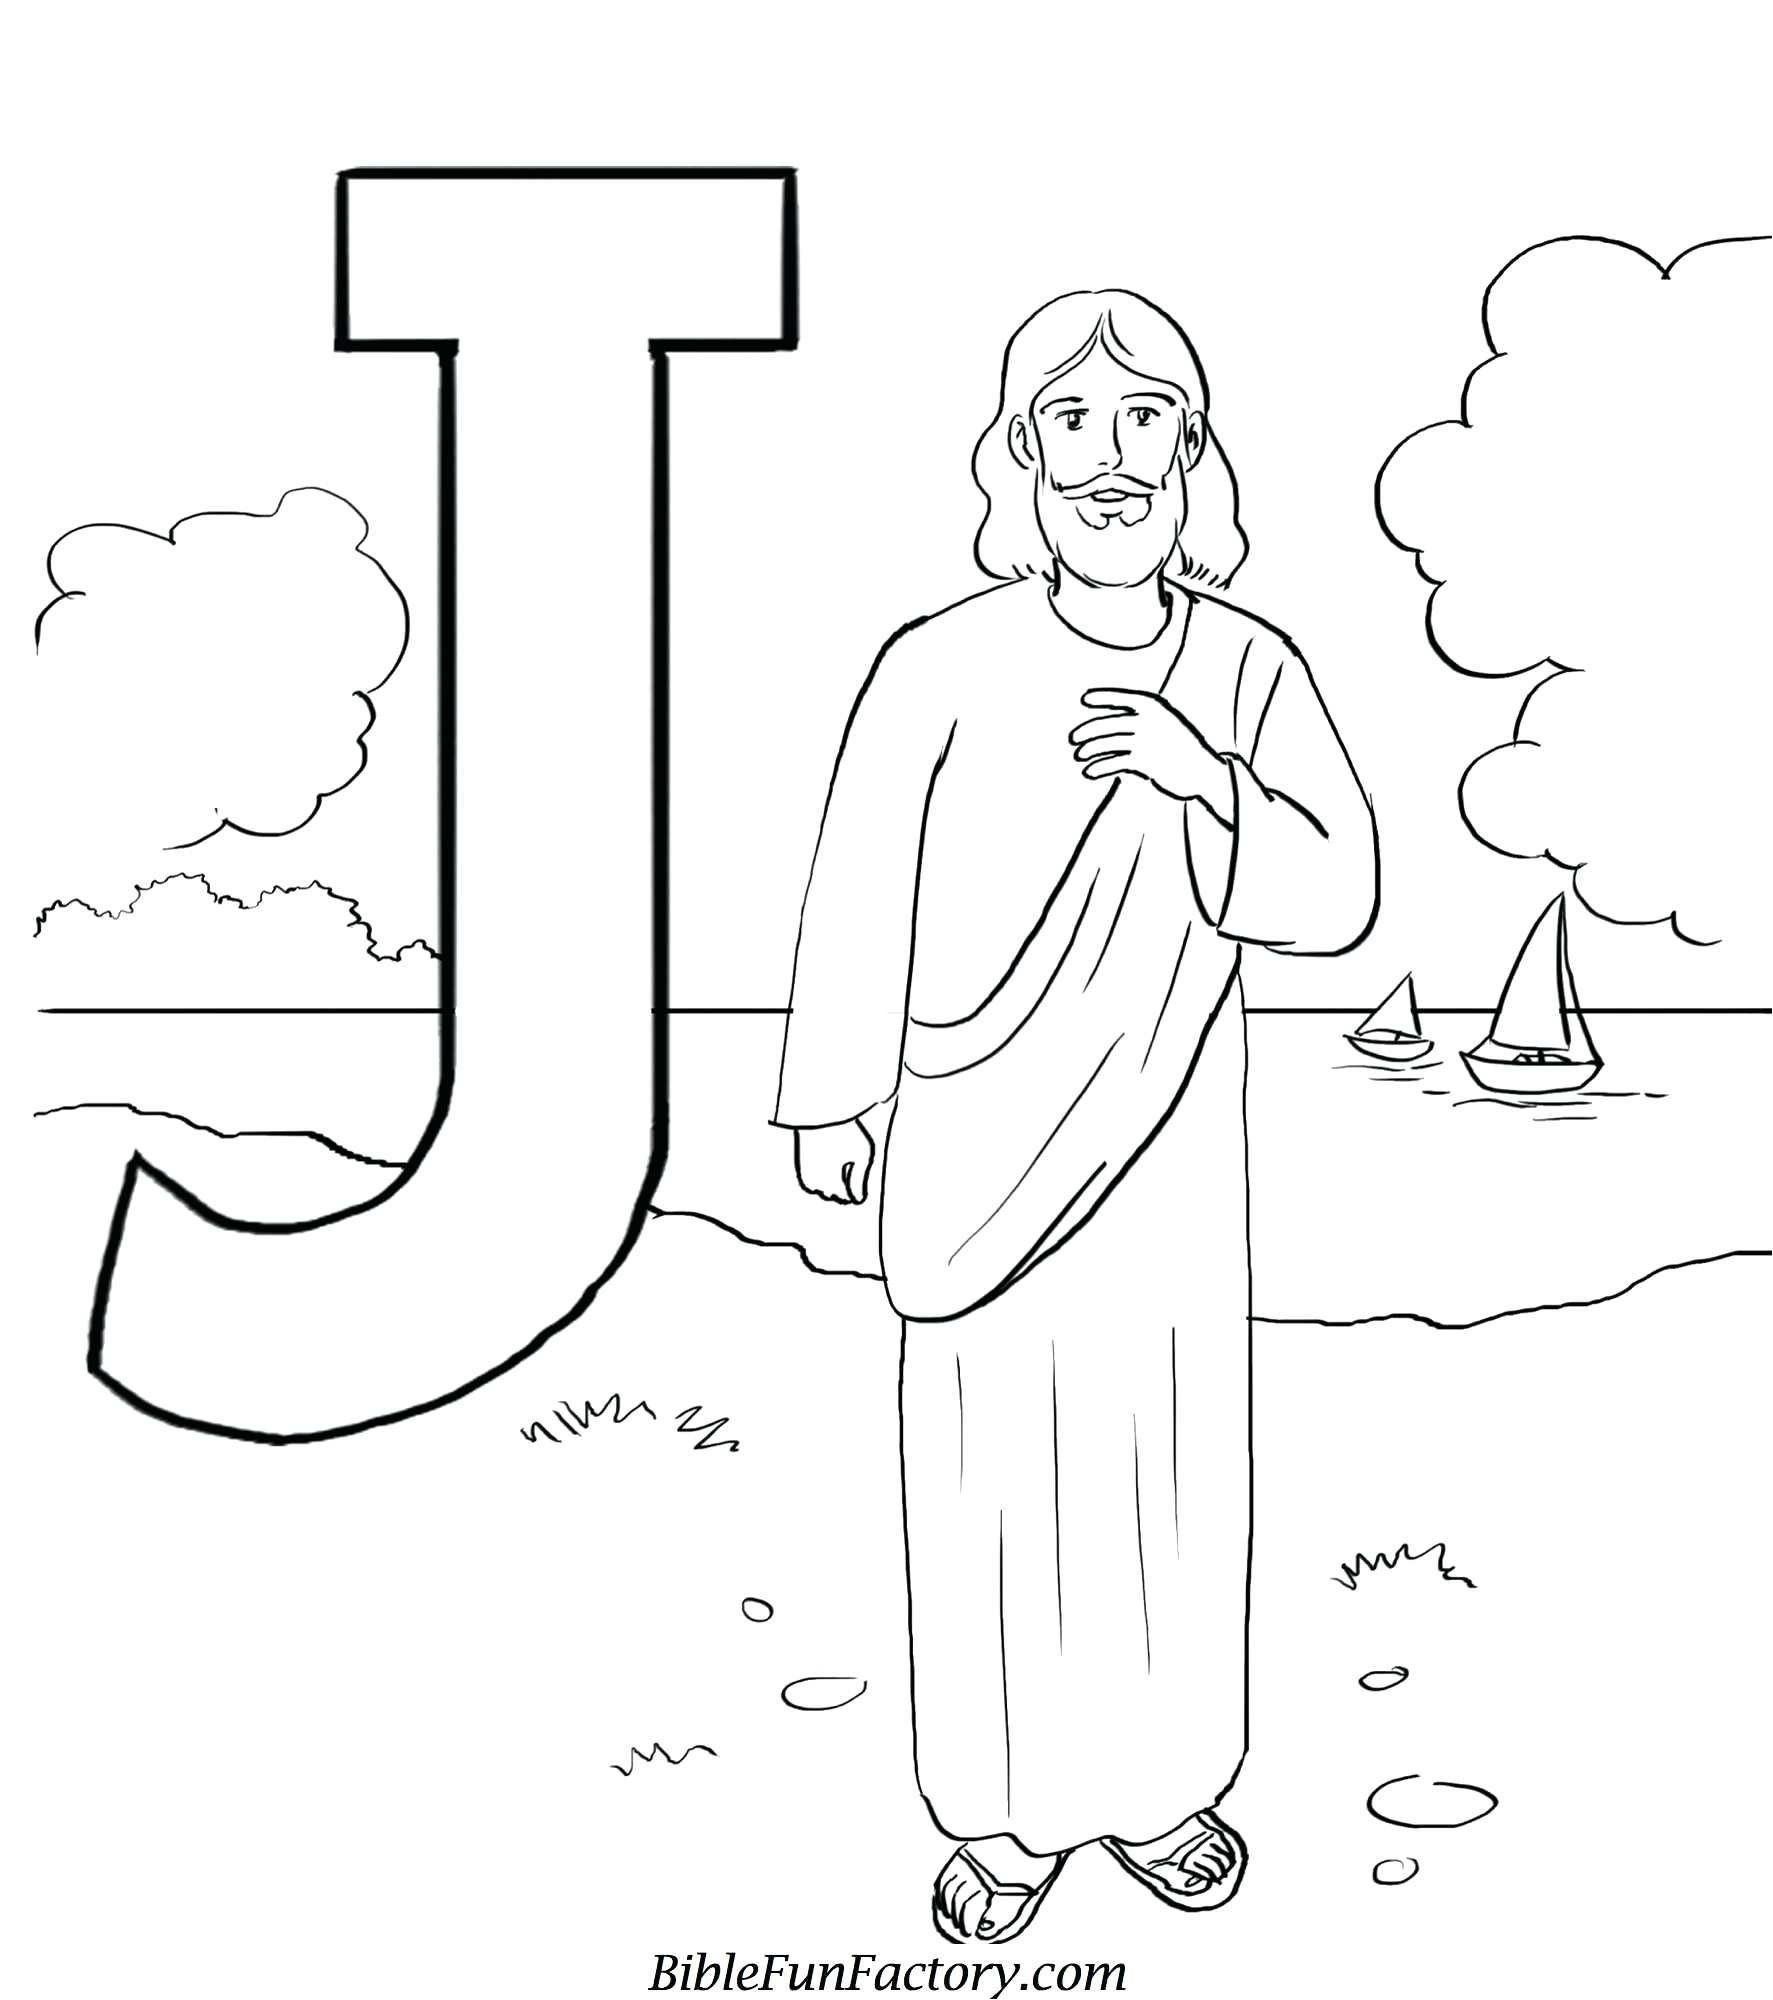 Jesus Loves Me Coloring Page Armor Of God Coloring Pages To Print Awesome Jesus Loves Me Coloring